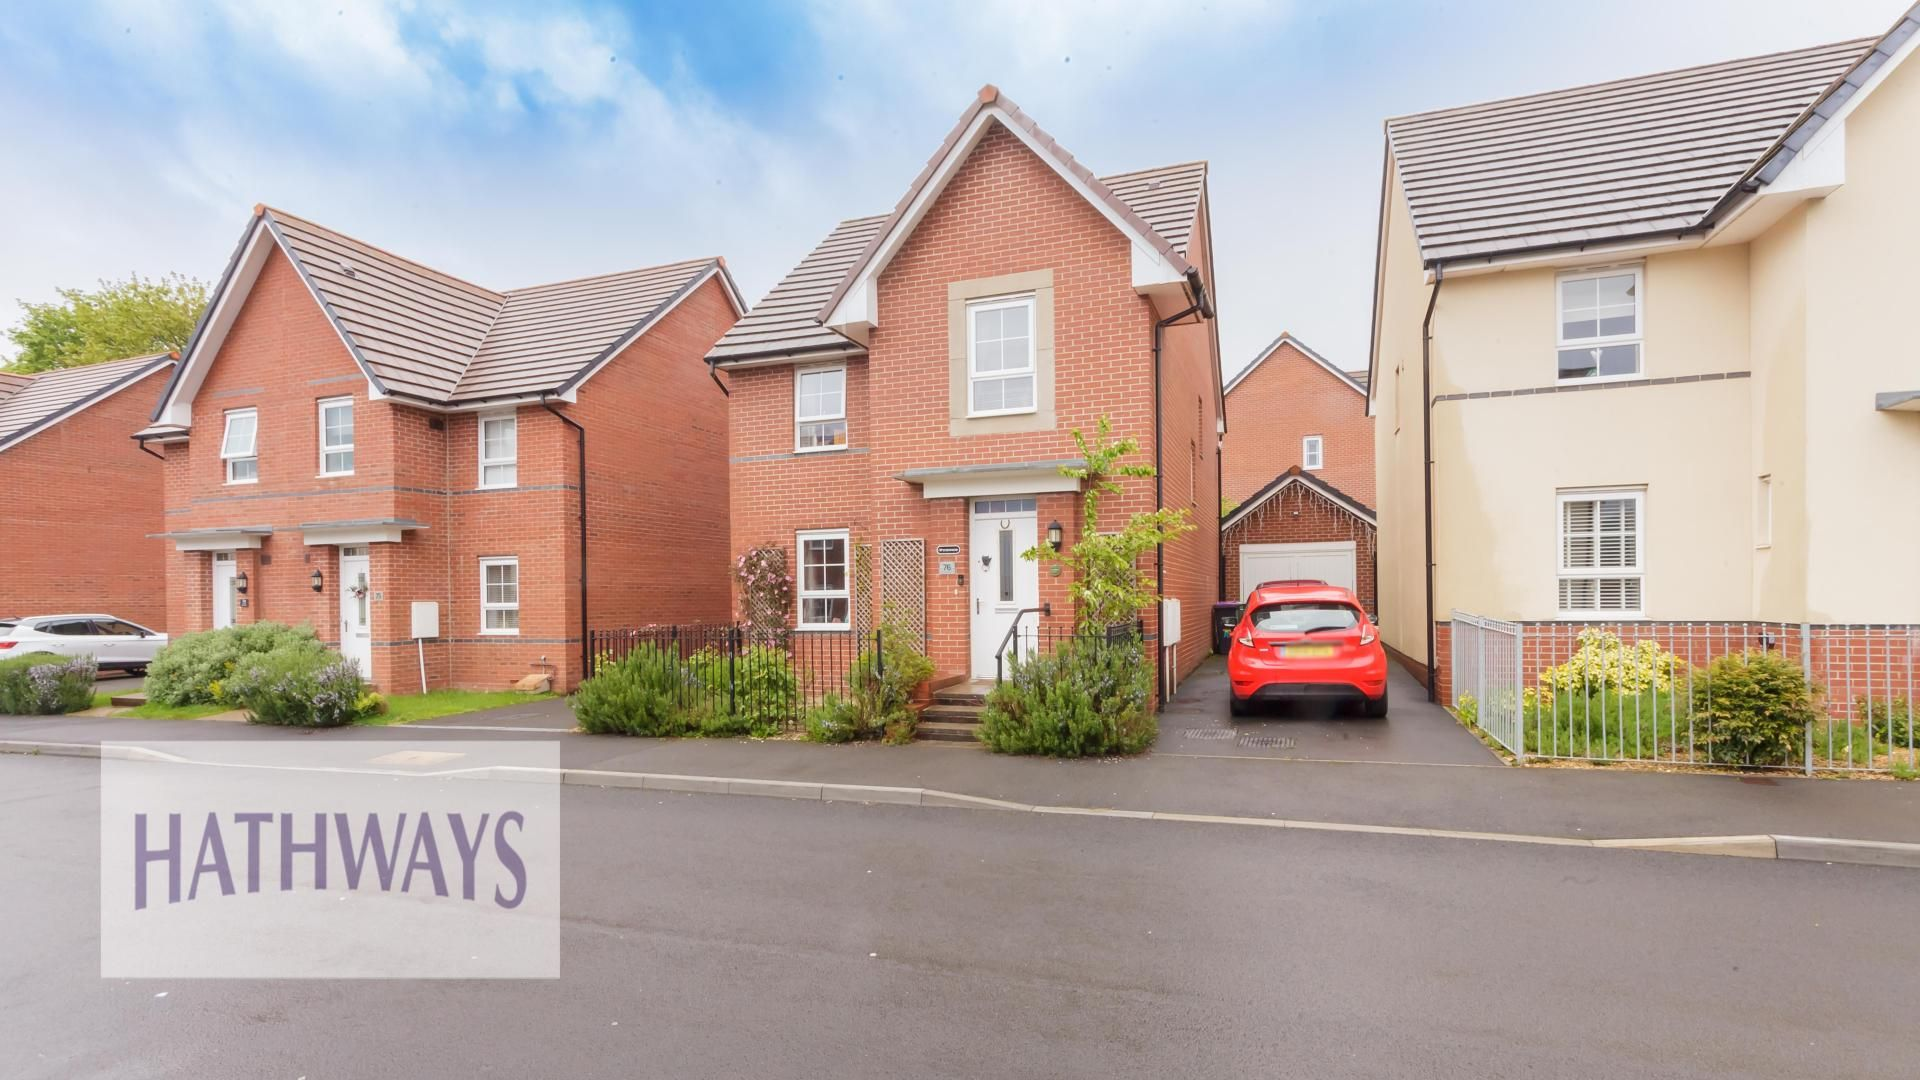 4 bed house for sale in John Jobbins Way, NP4